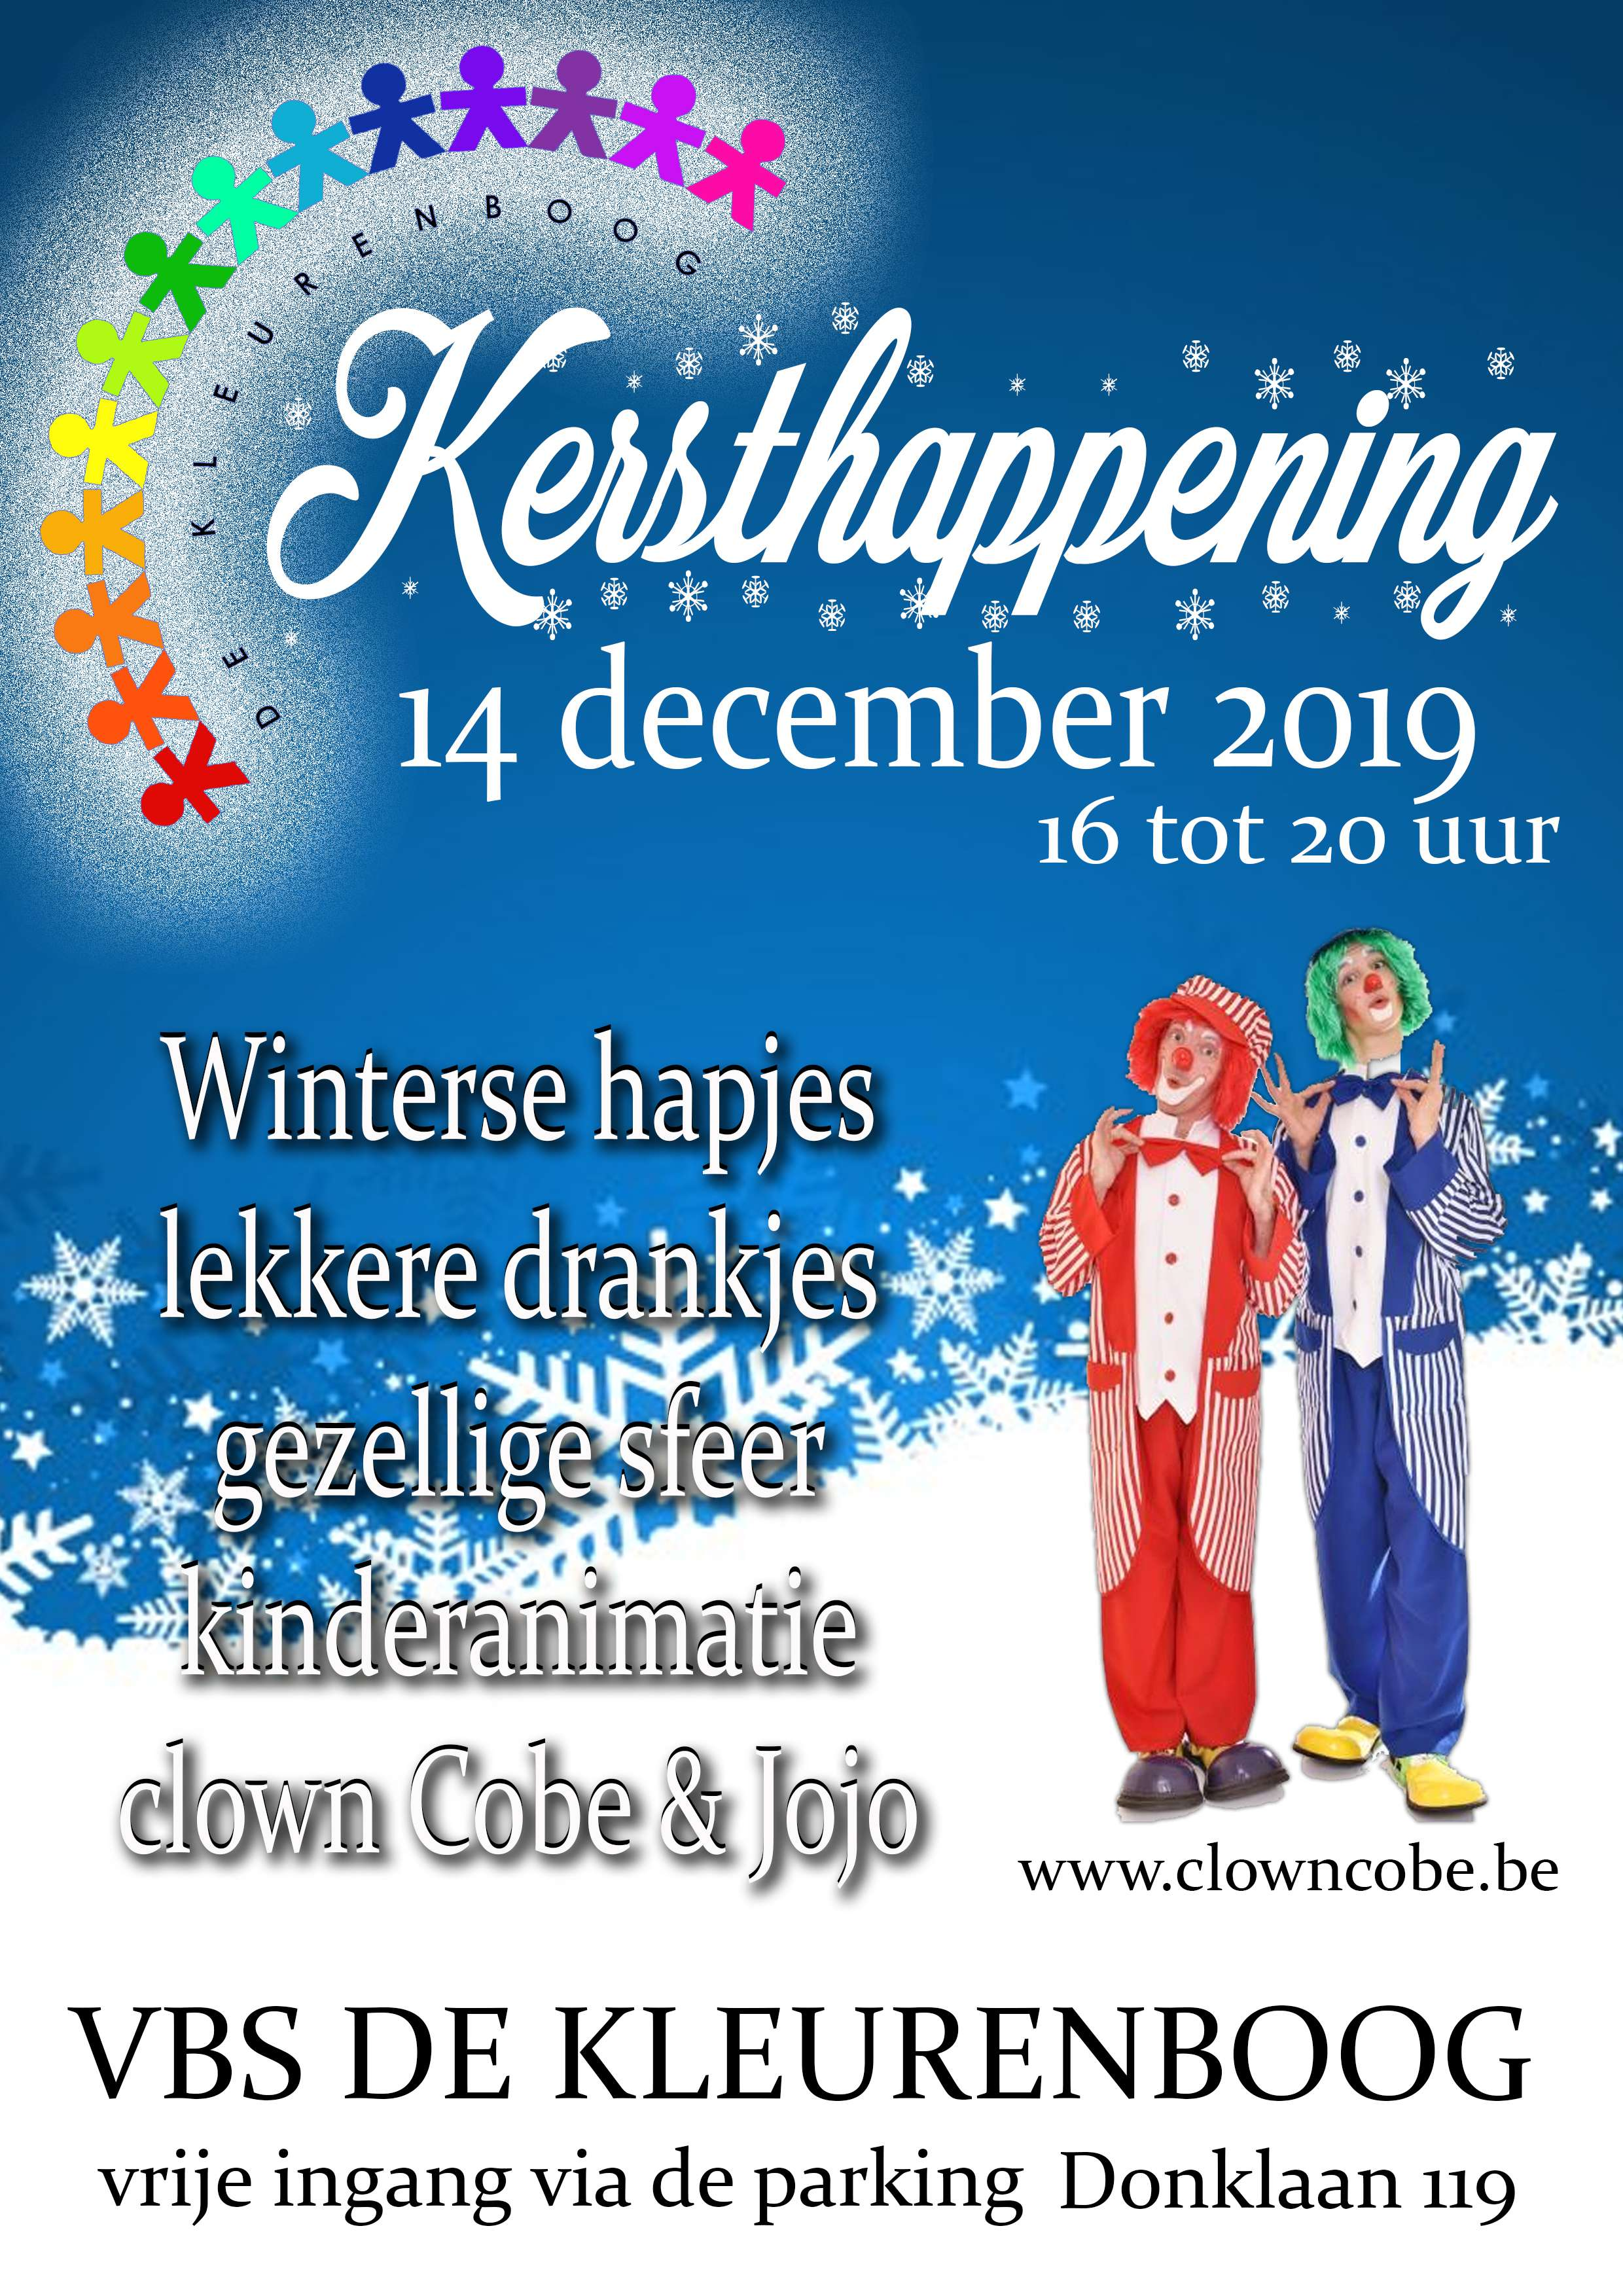 Affiche kersthappening 2019 D100